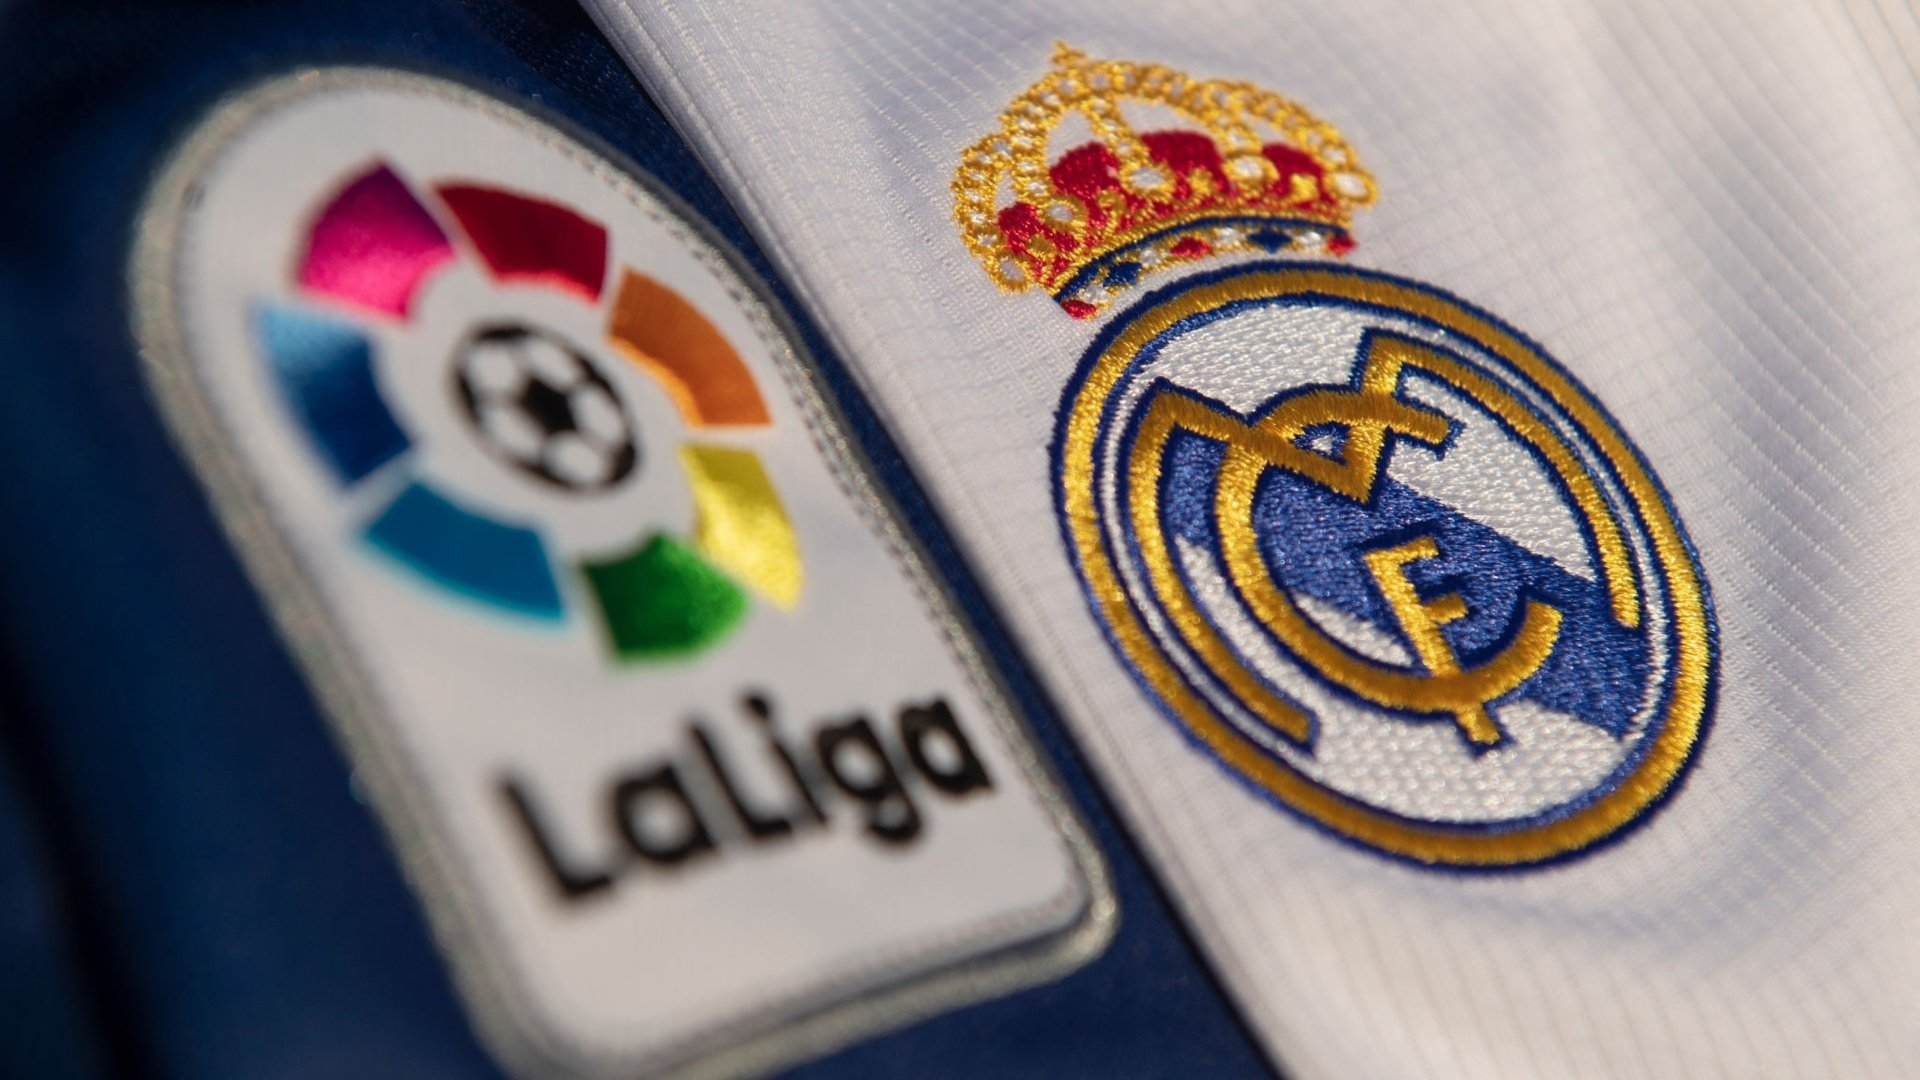 LaLiga given green light to resume from 8 June